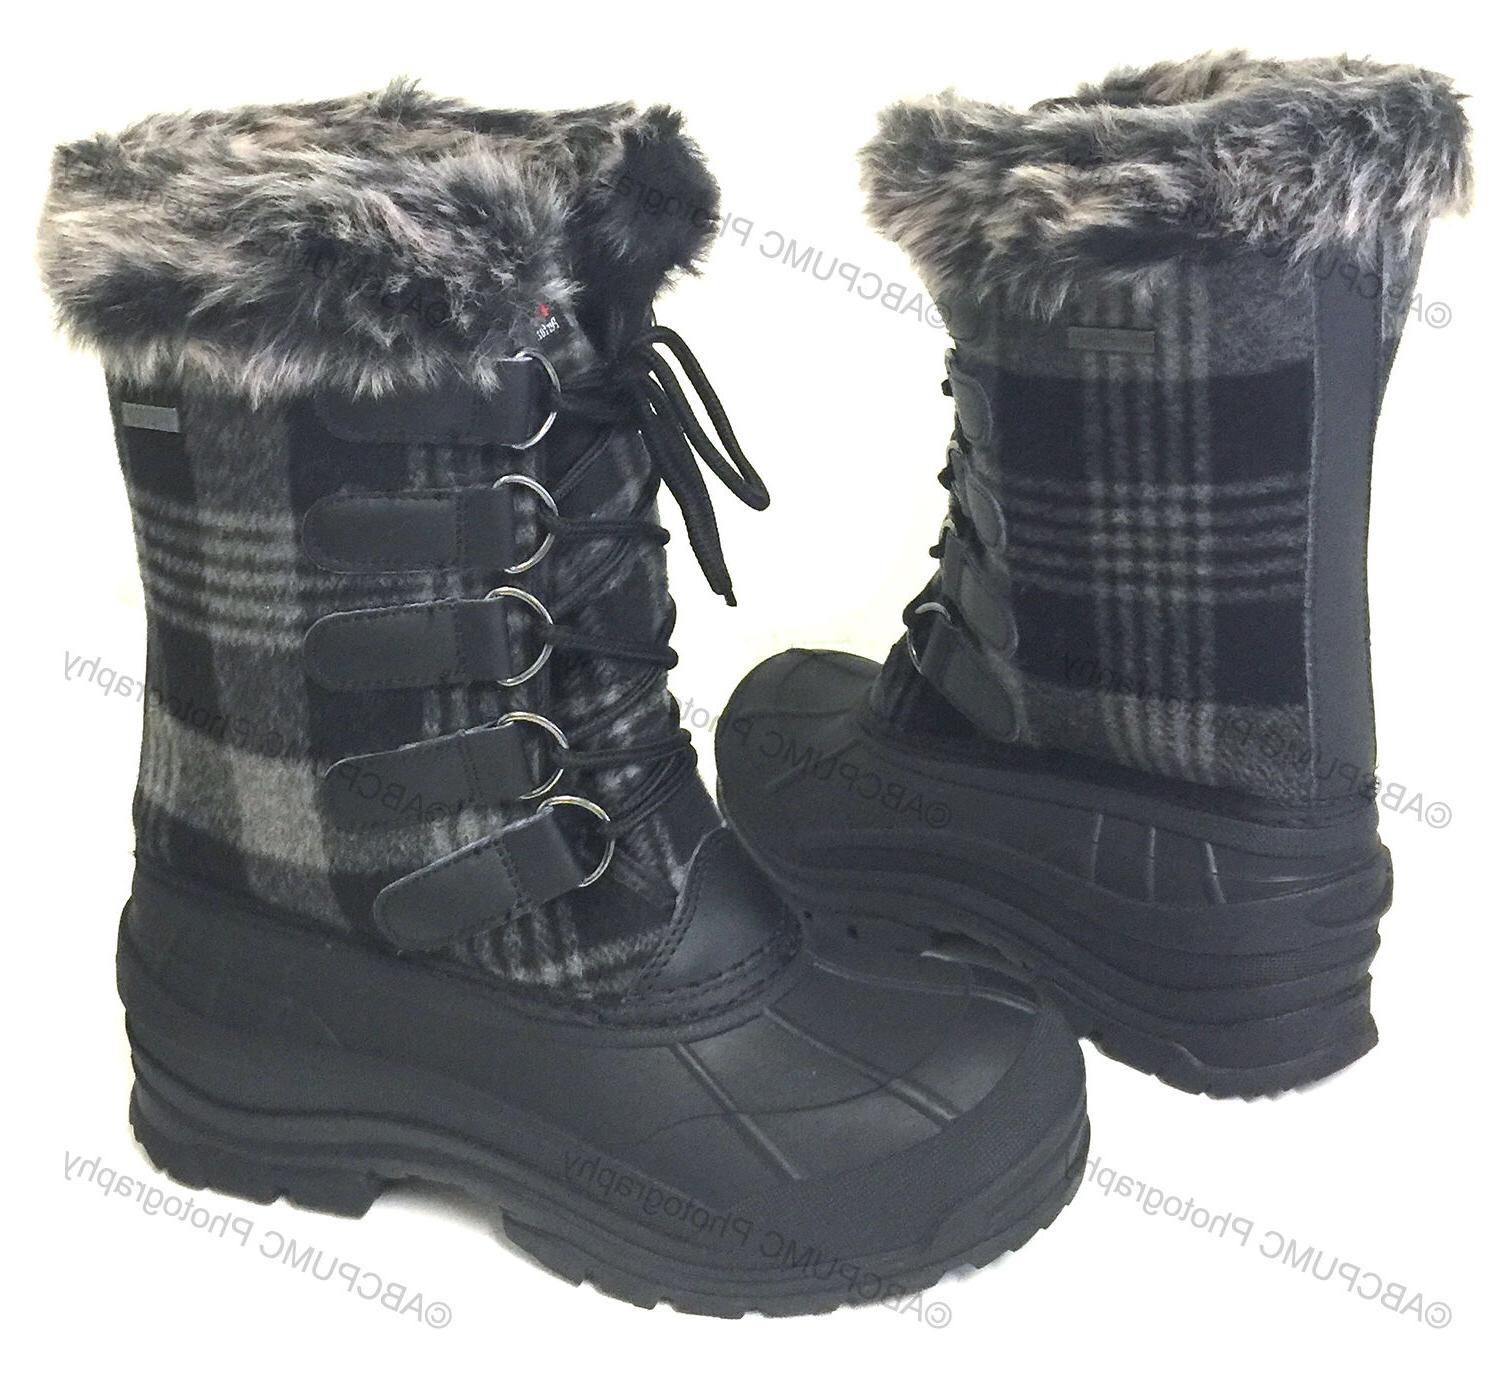 Womens Plaid Insulated Fur Hiking Snow